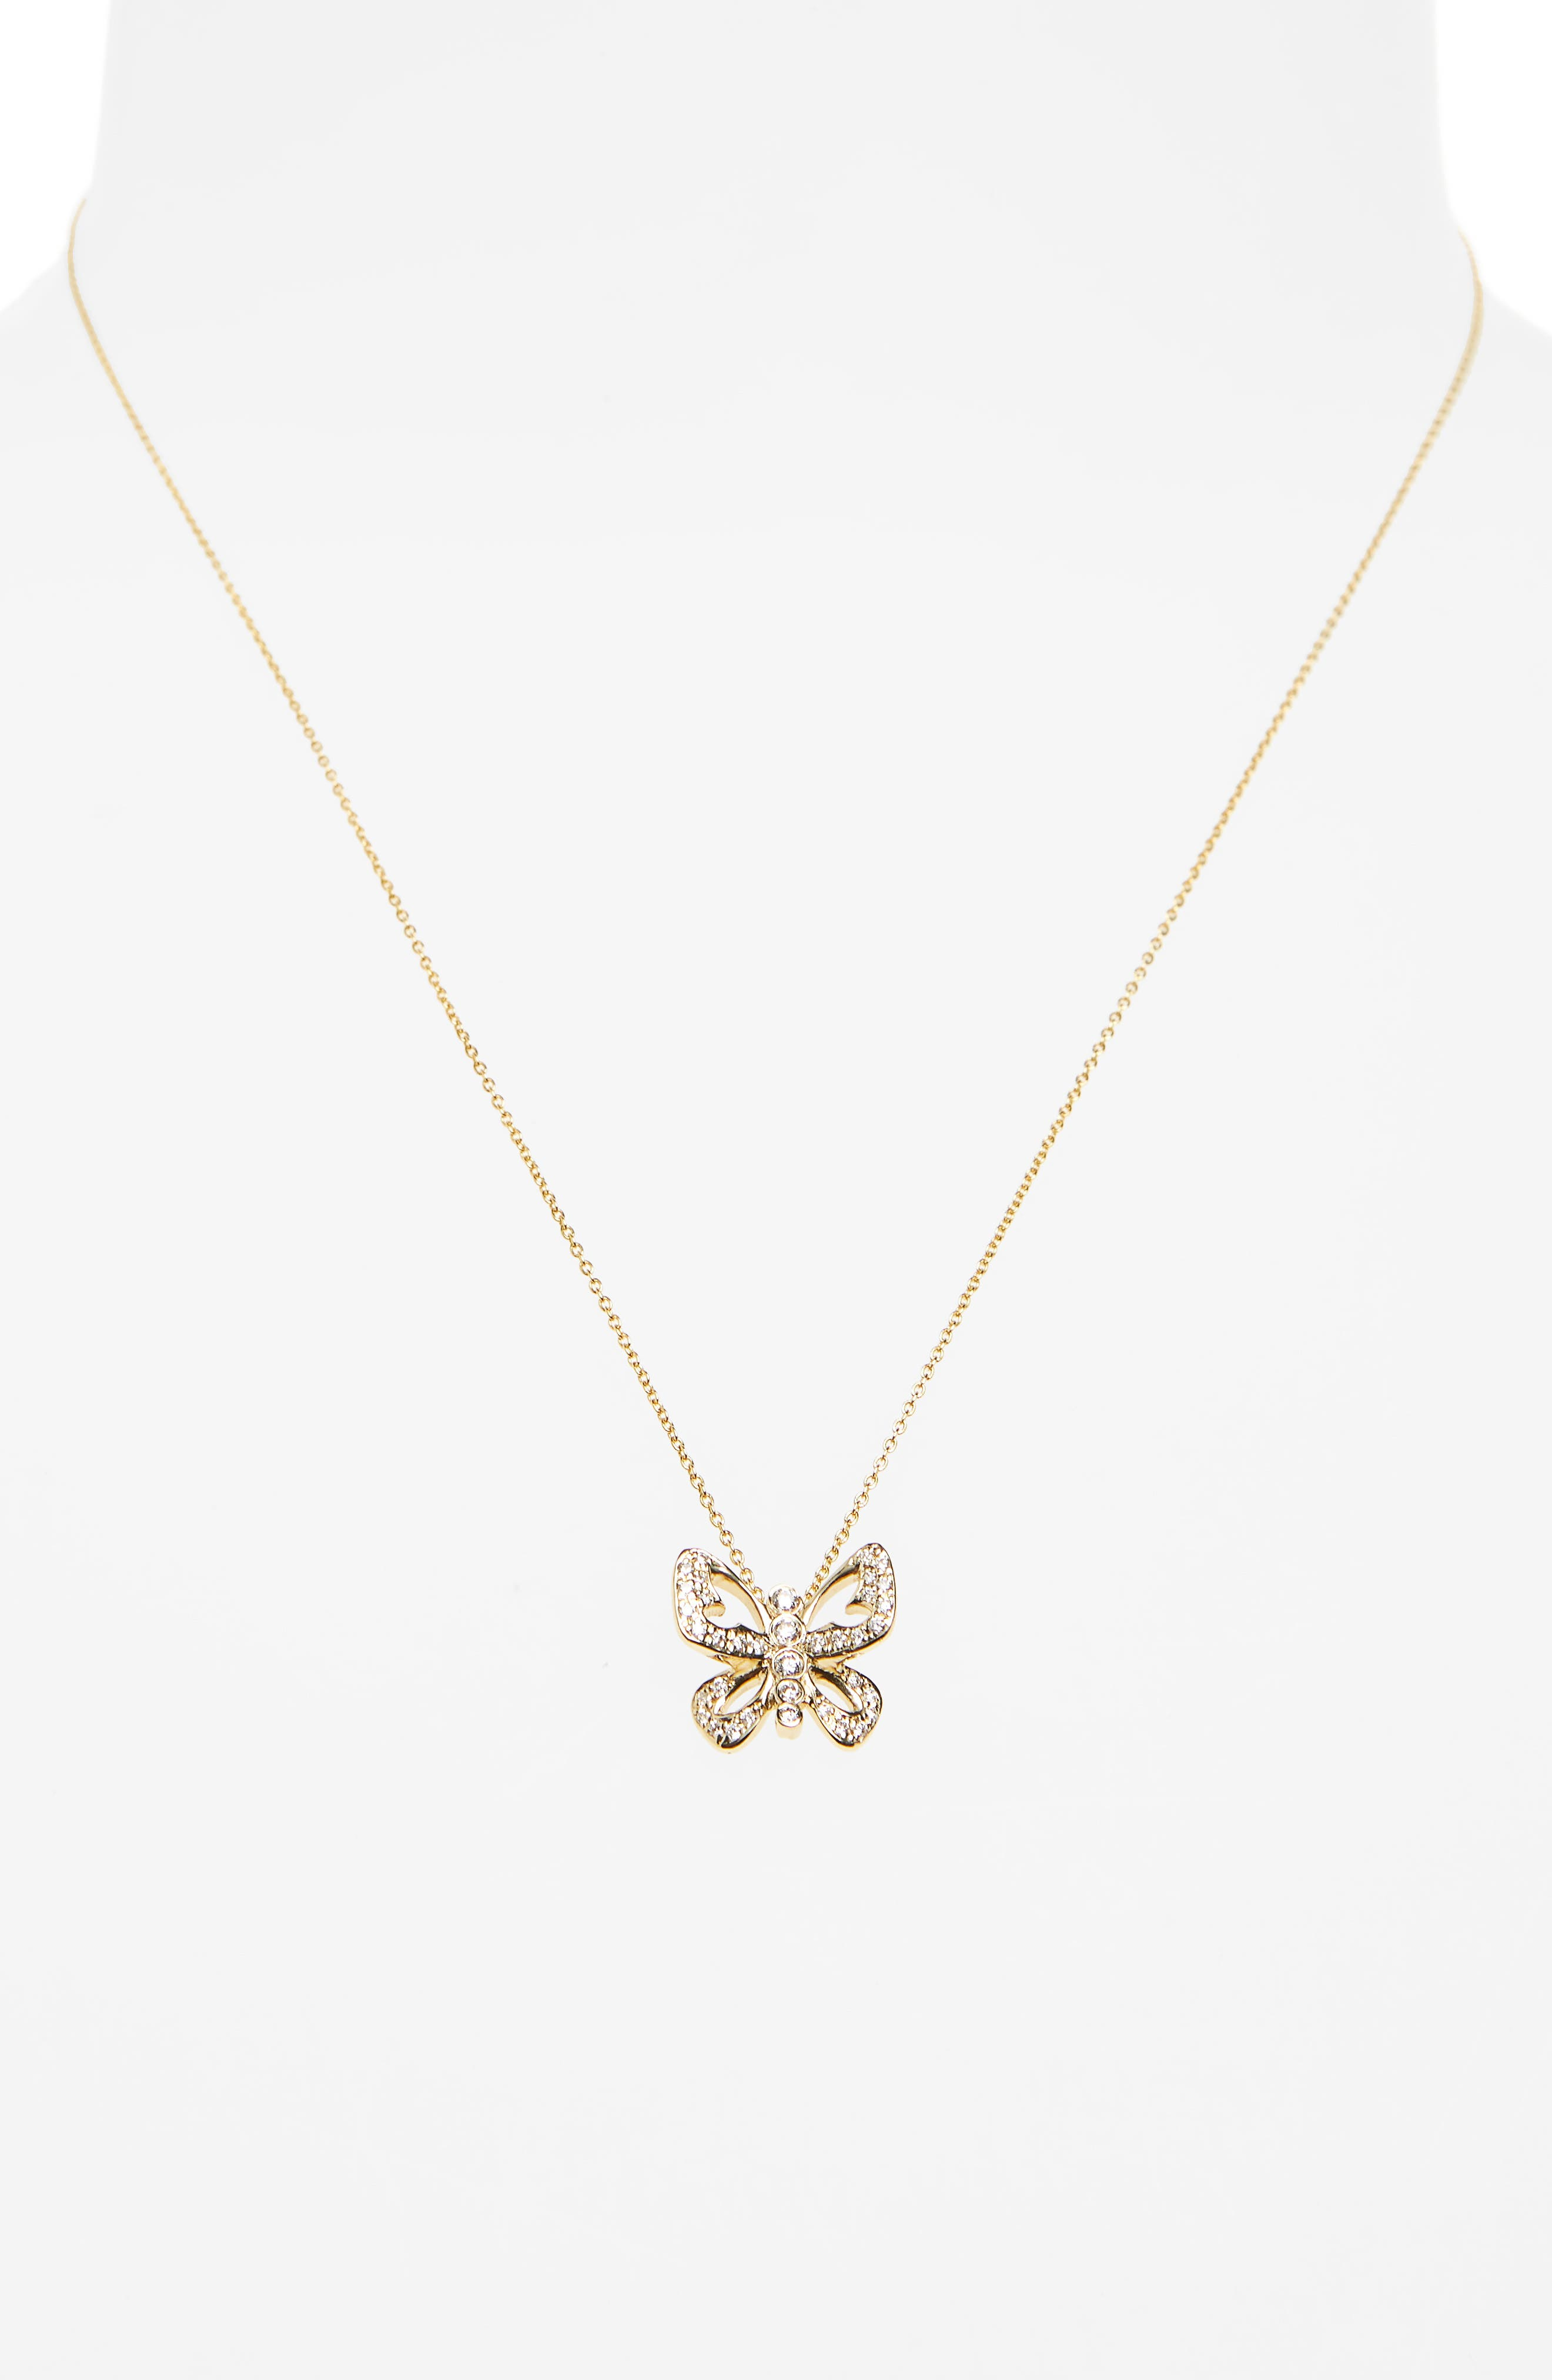 Diamond Butterfly Pendant Necklace,                             Alternate thumbnail 2, color,                             Yellow Gold